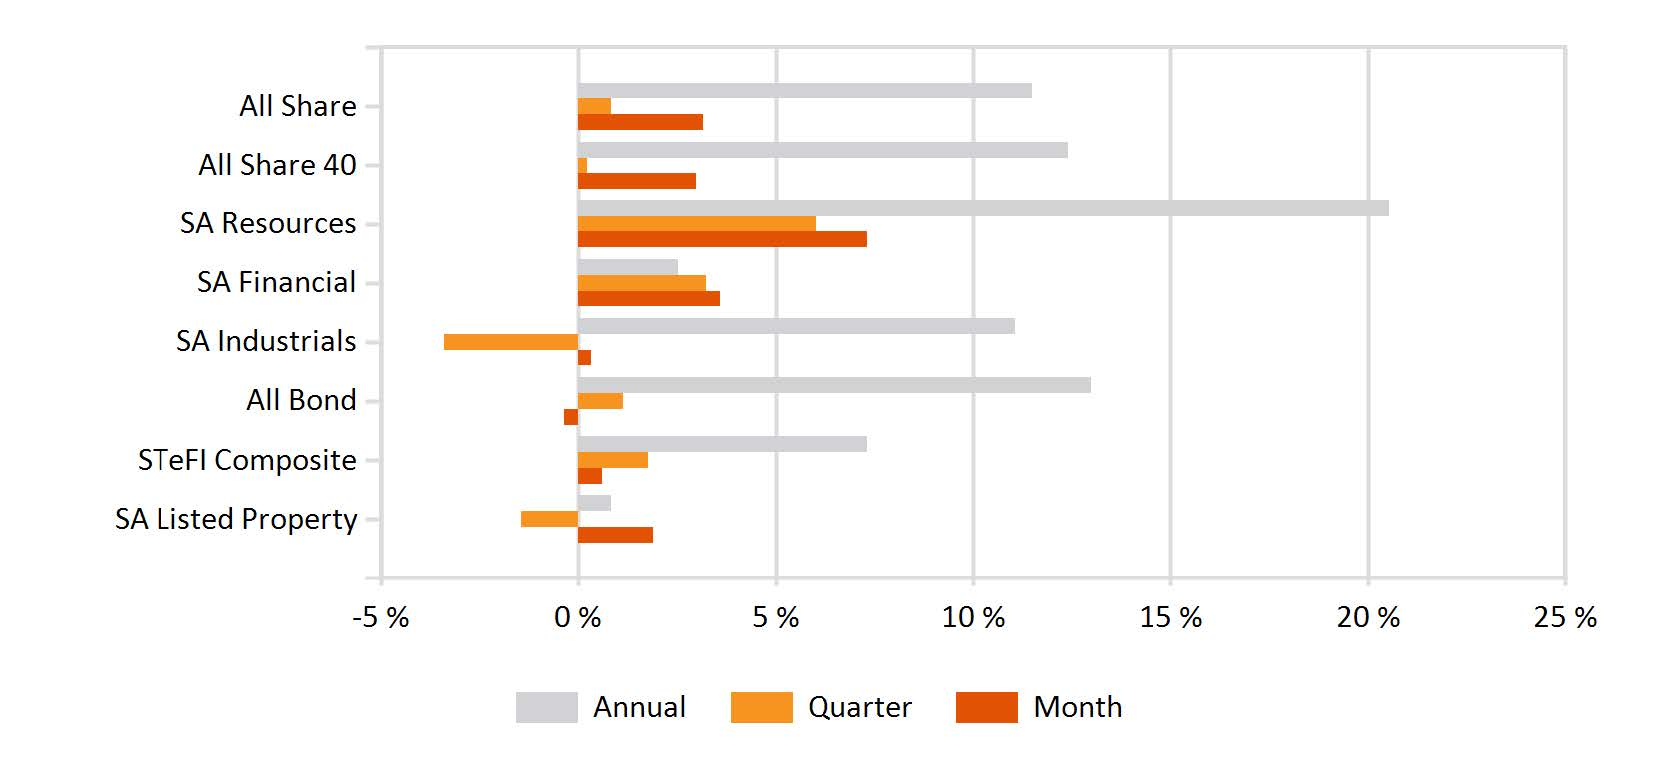 Returns of FTSE-JSE sectors and indices